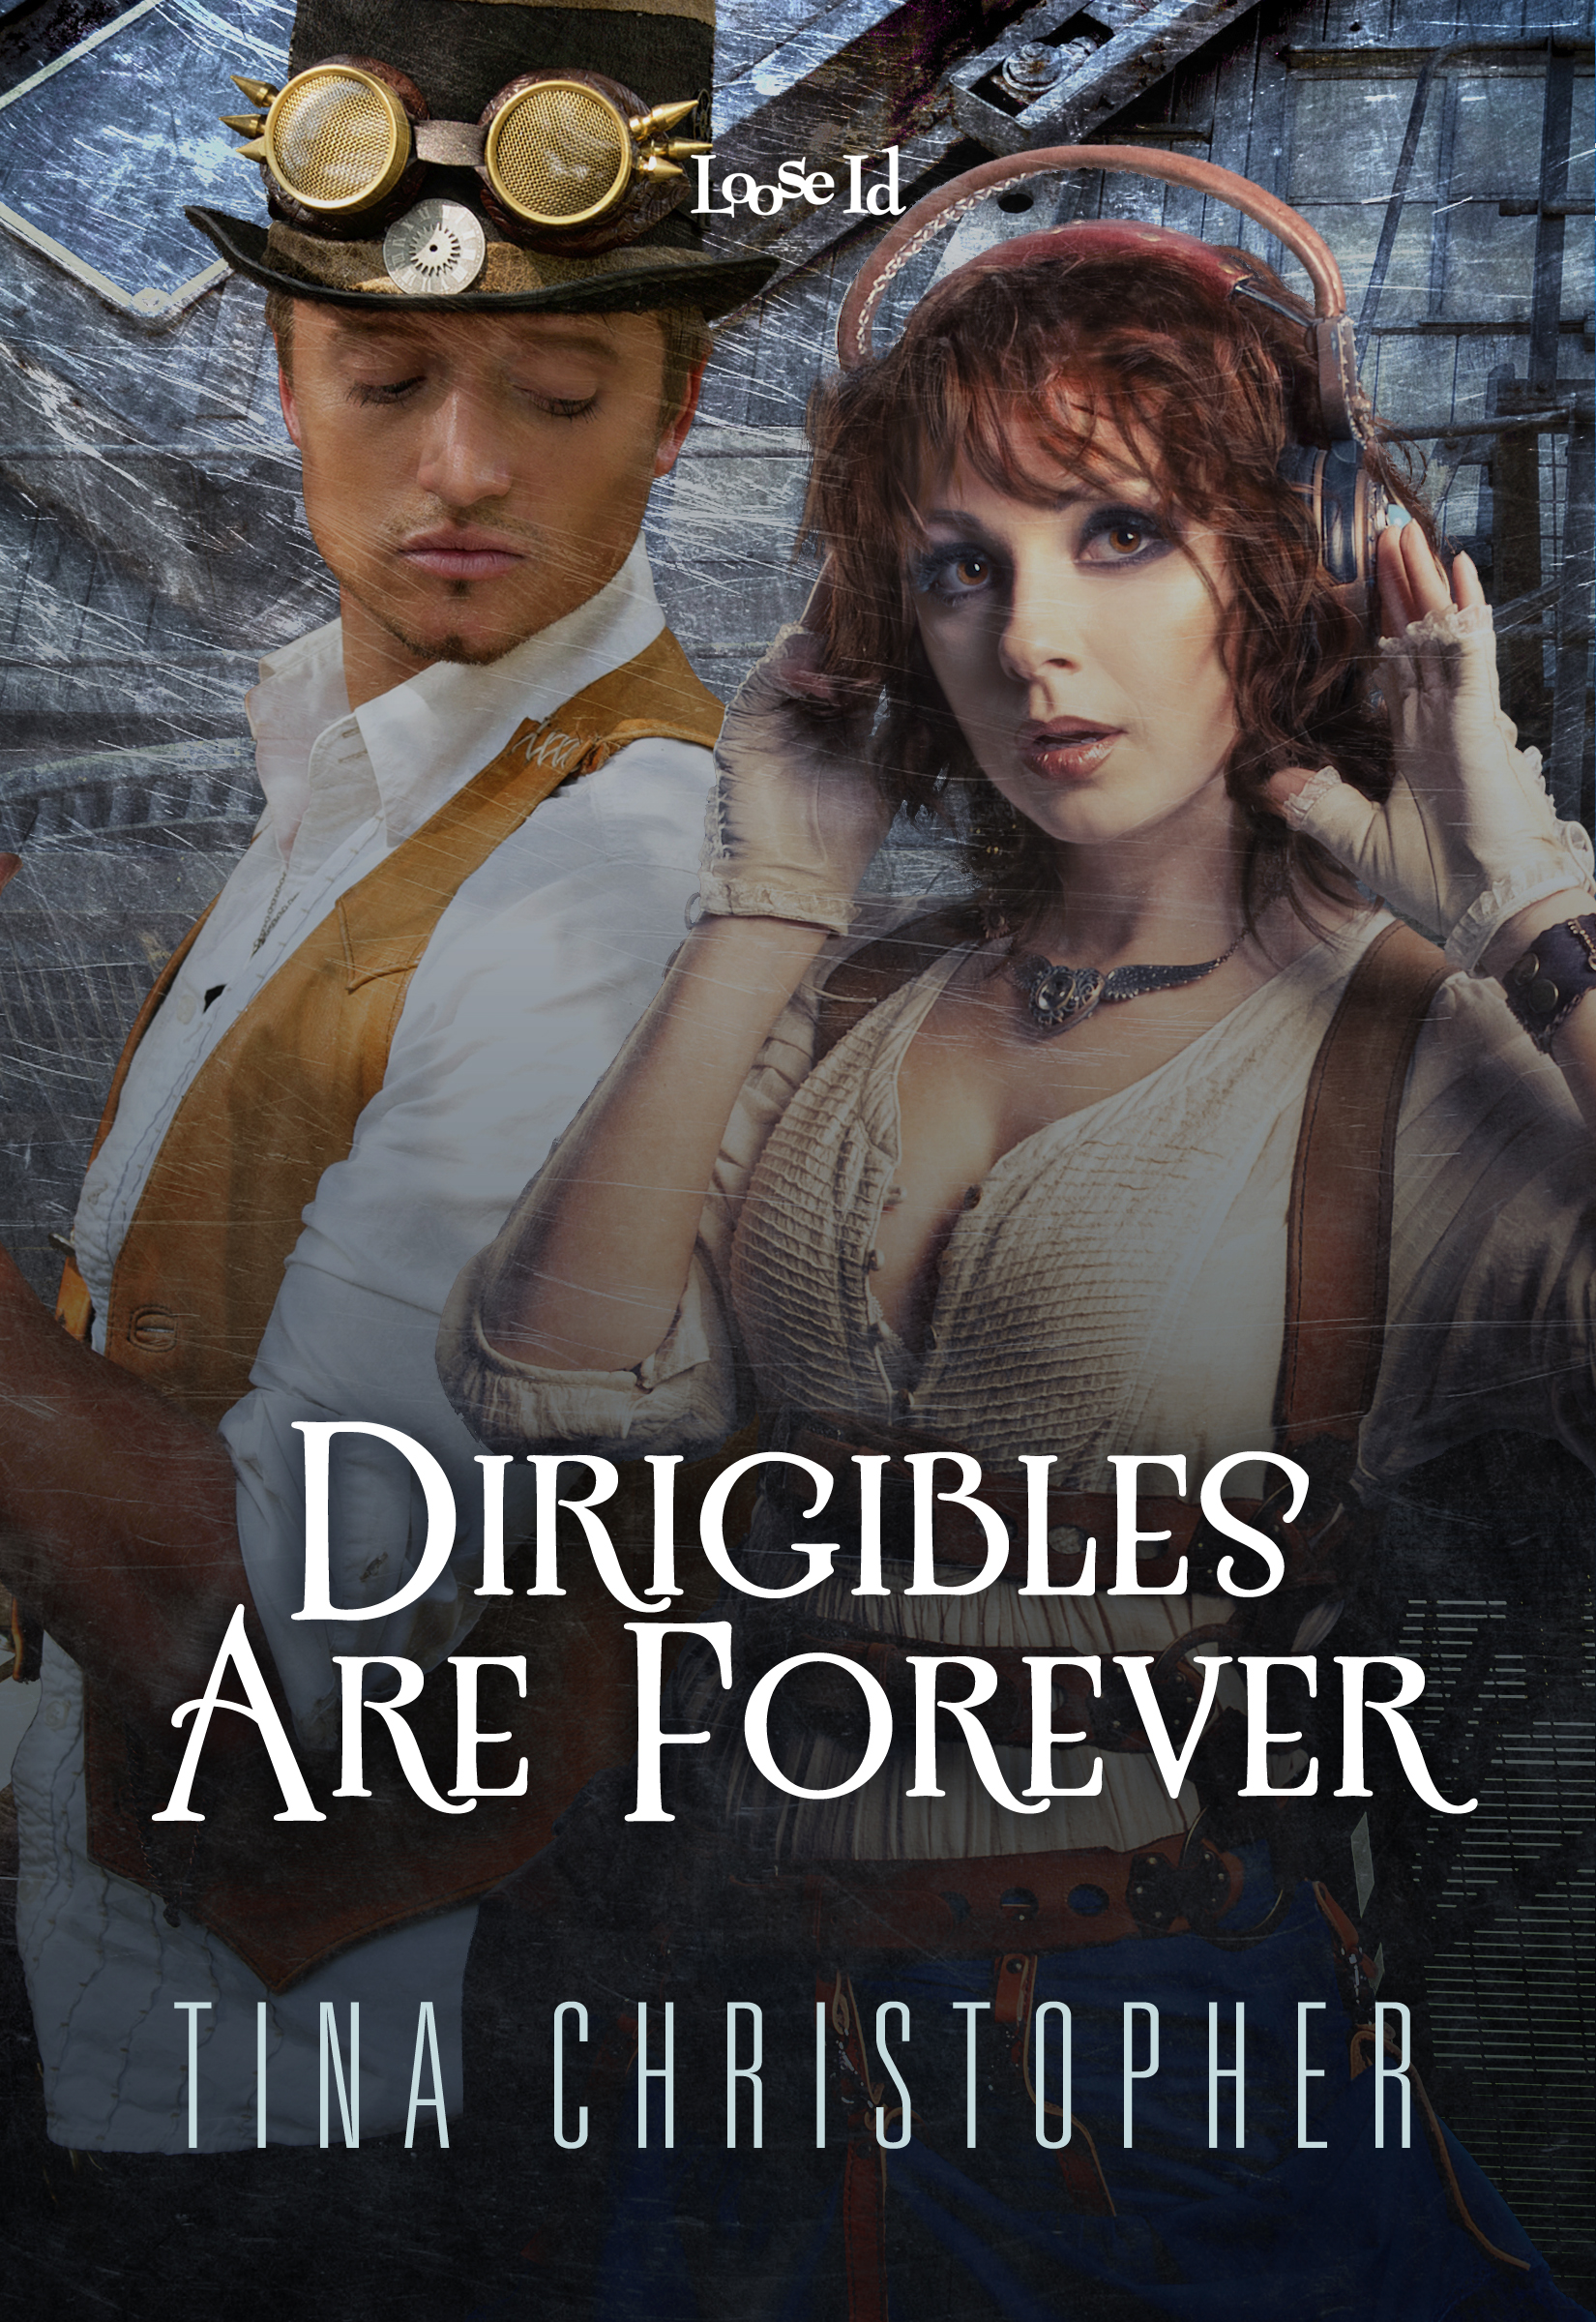 dirigibles are forever, tina christopher, steampunk cover reveal, alternative london, erotic romance, romance, christmas story, christmas romance, ella sheridan, romantic suspense